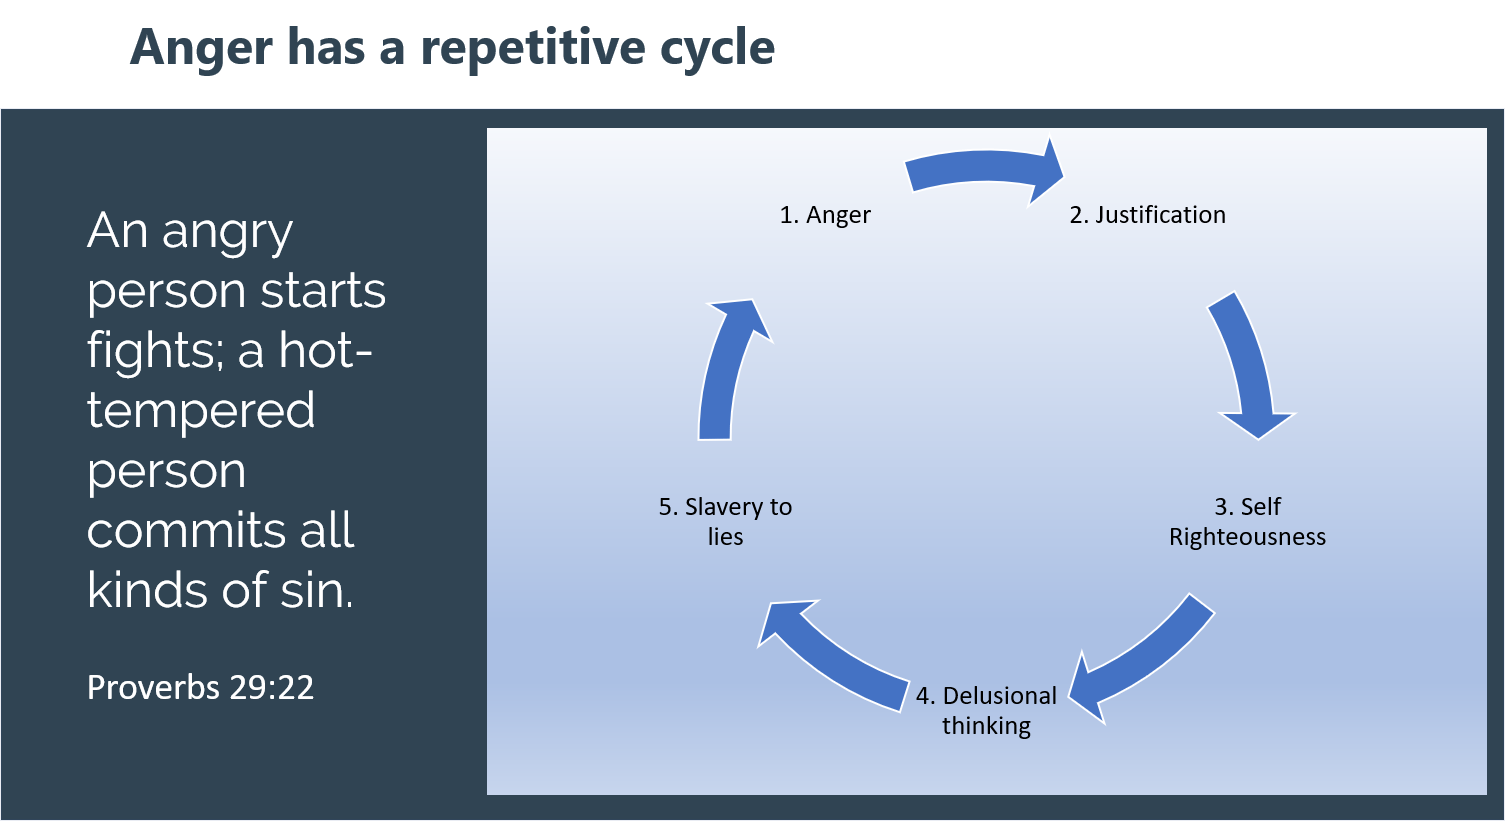 Anger has a repetitive cycle